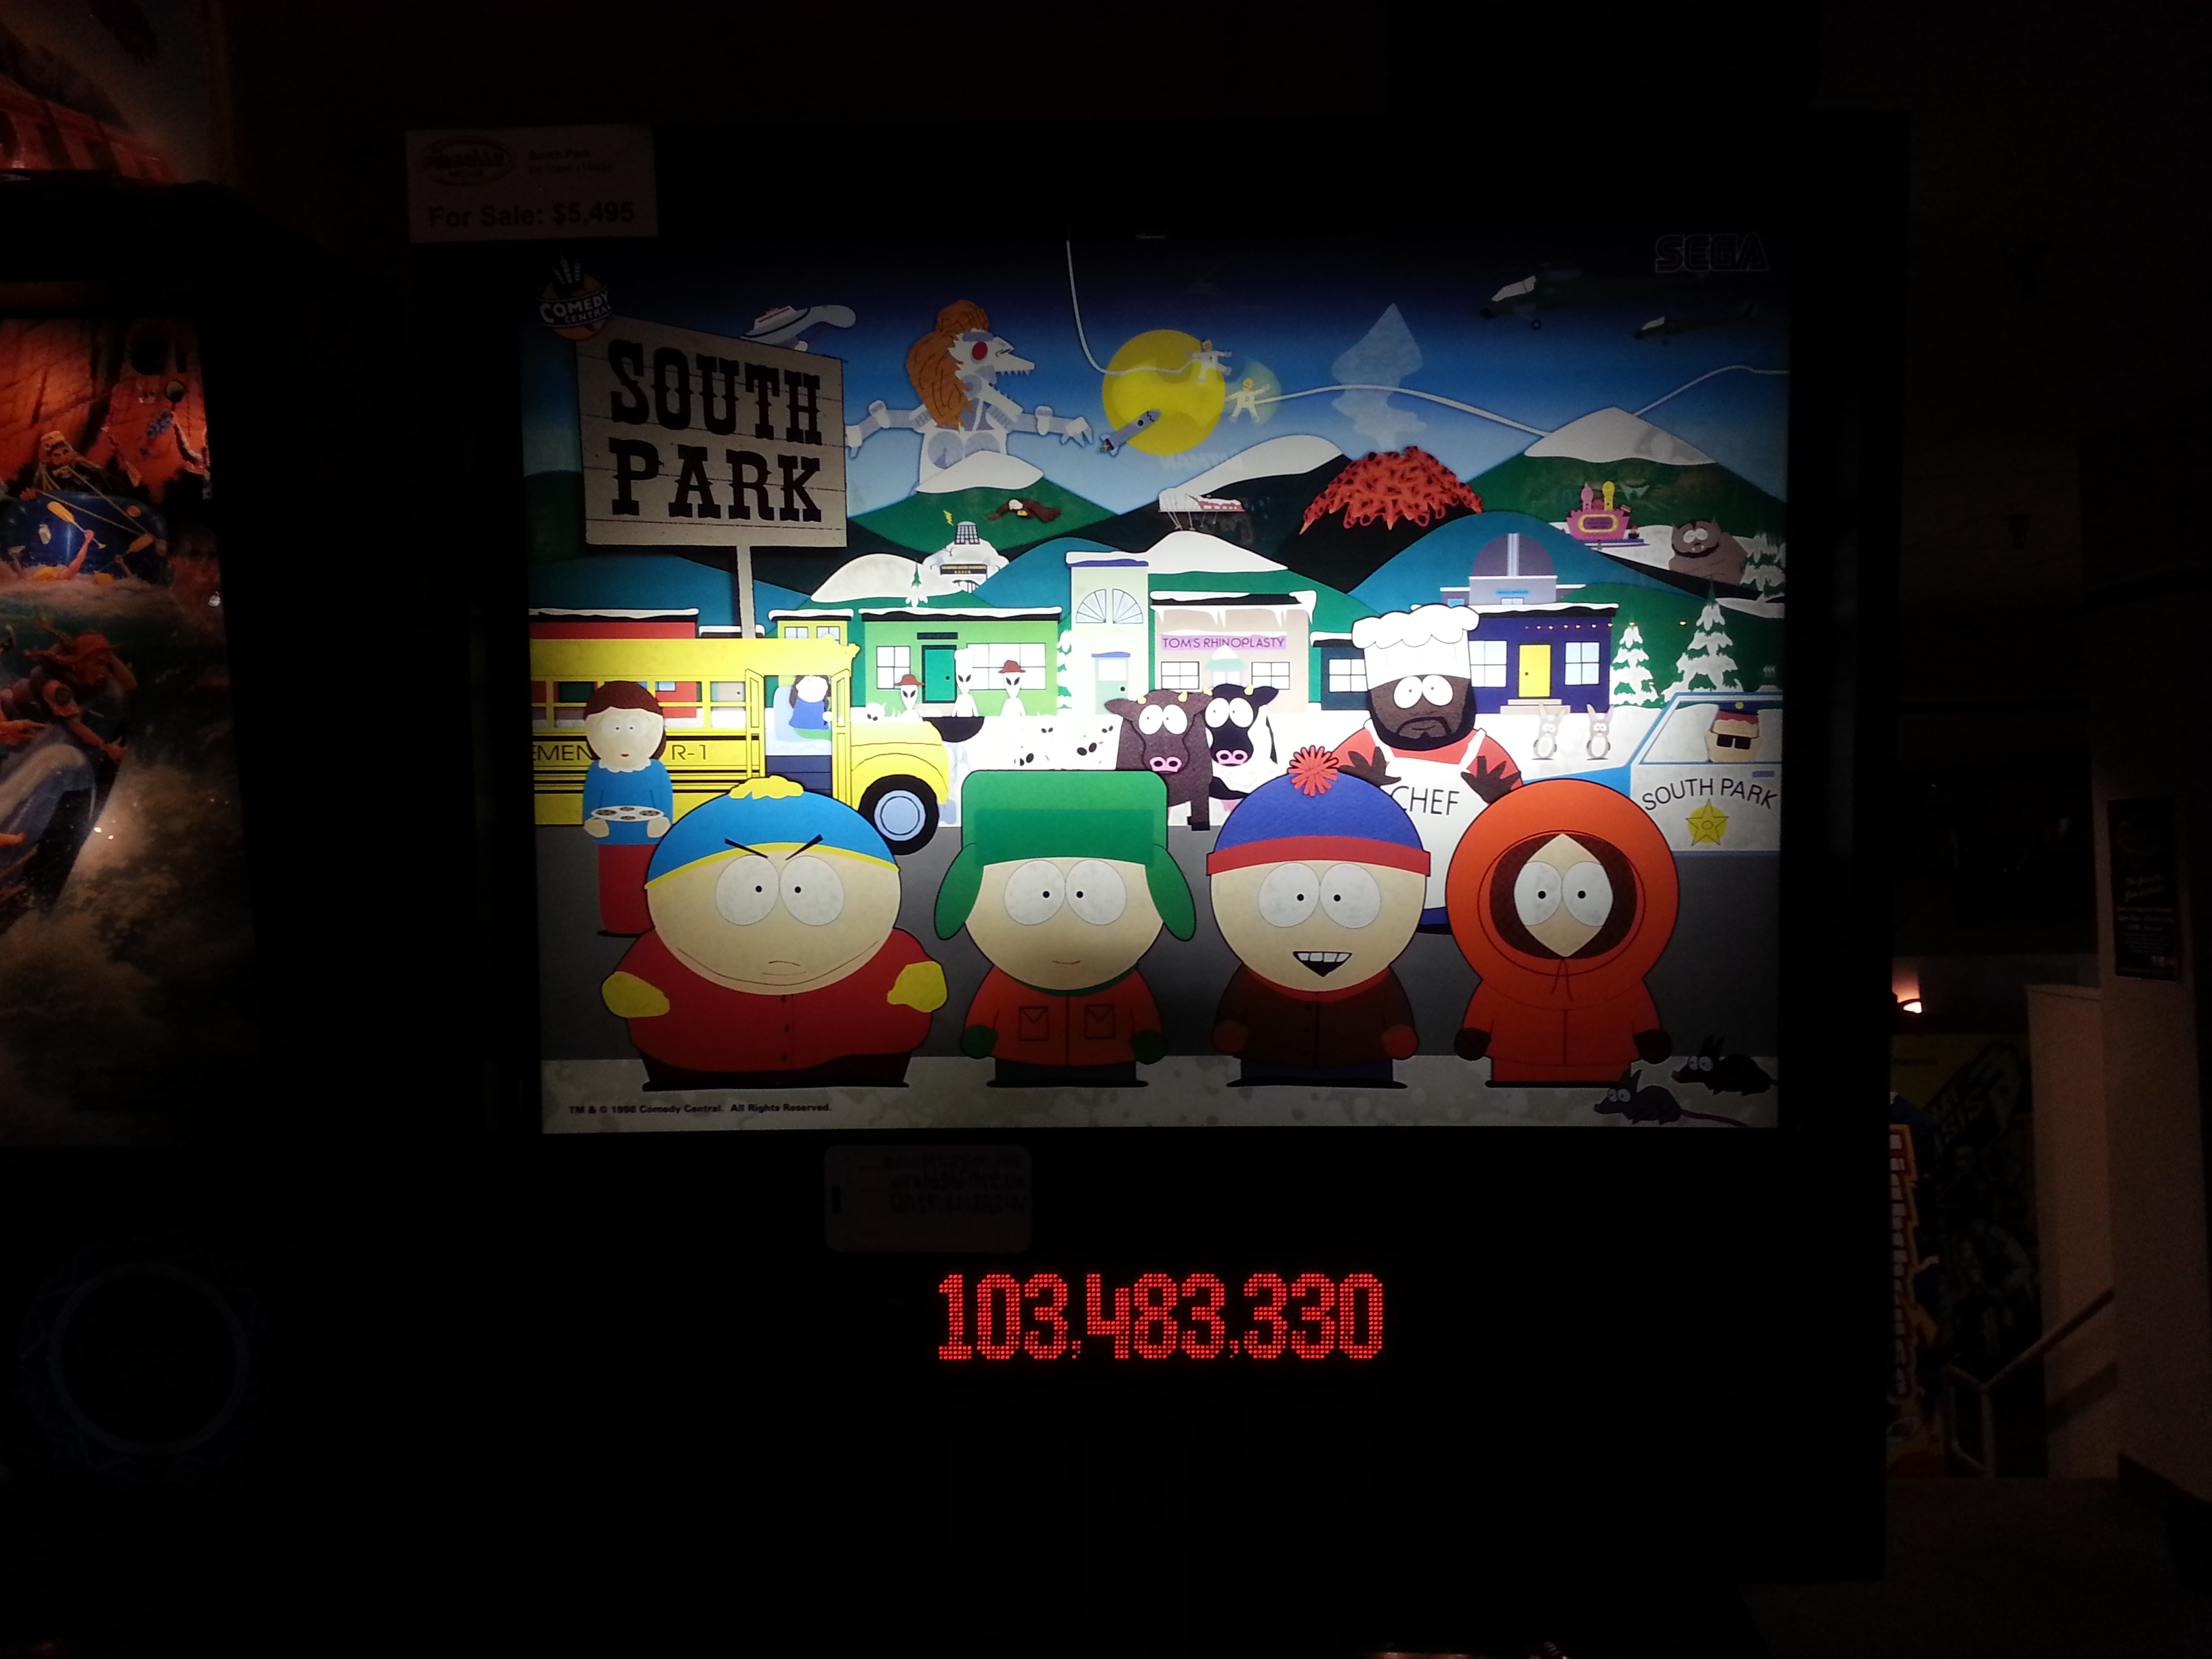 South Park 103,483,330 points